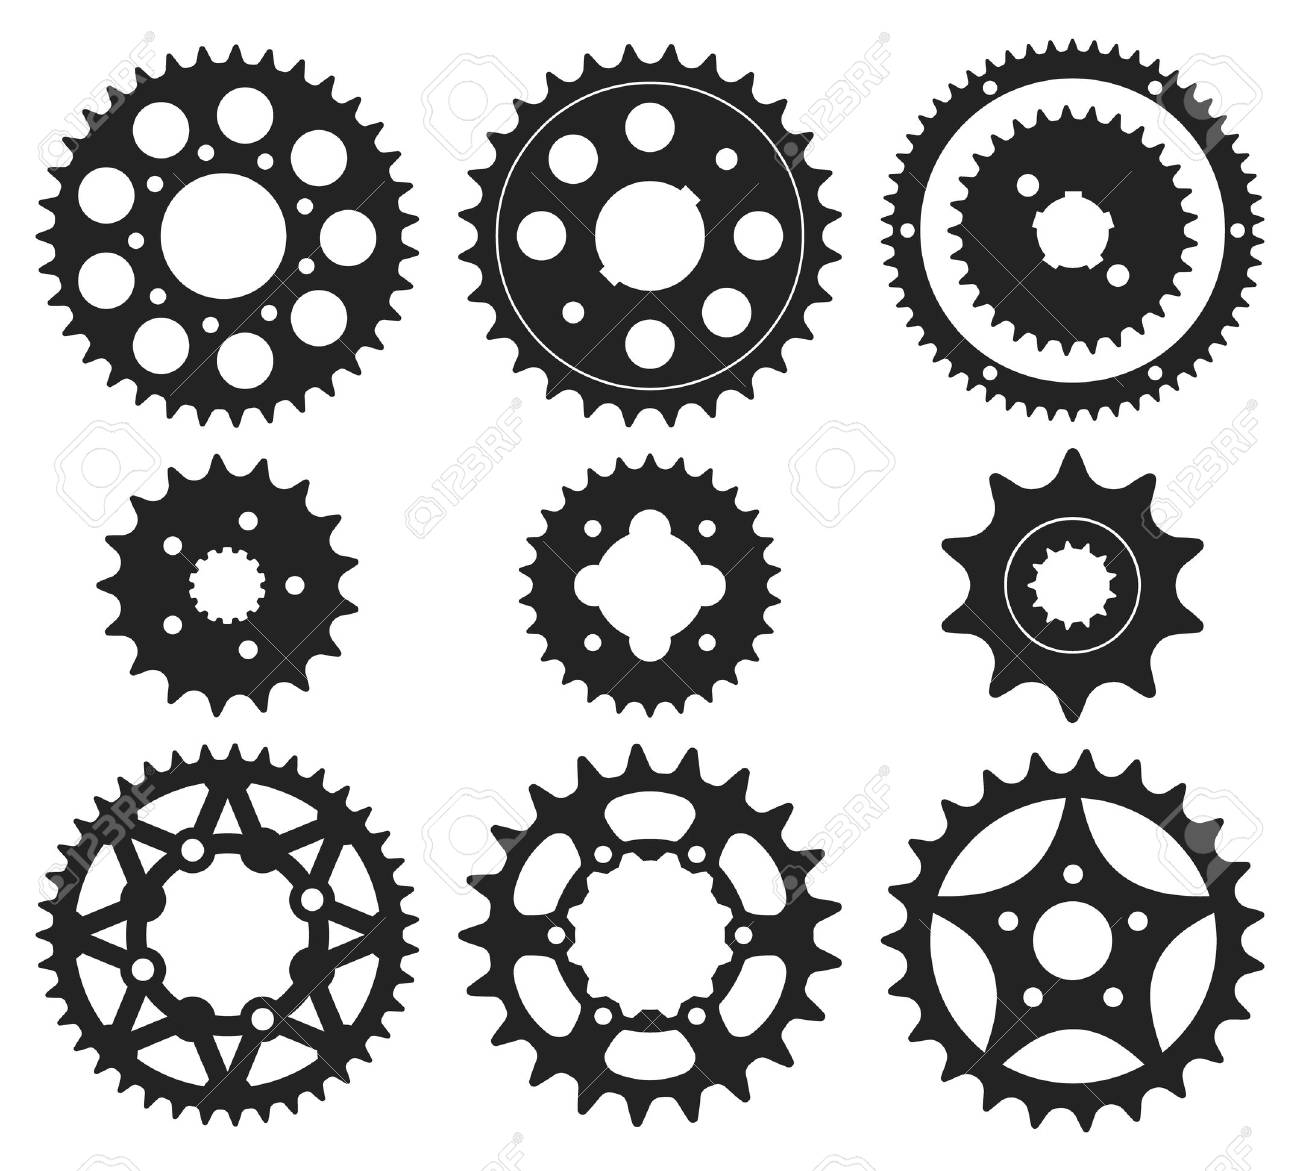 7d78d4cc25e Vector Set Of Bike Chainrings And Rear Sprocket Silhouettes Royalty ...